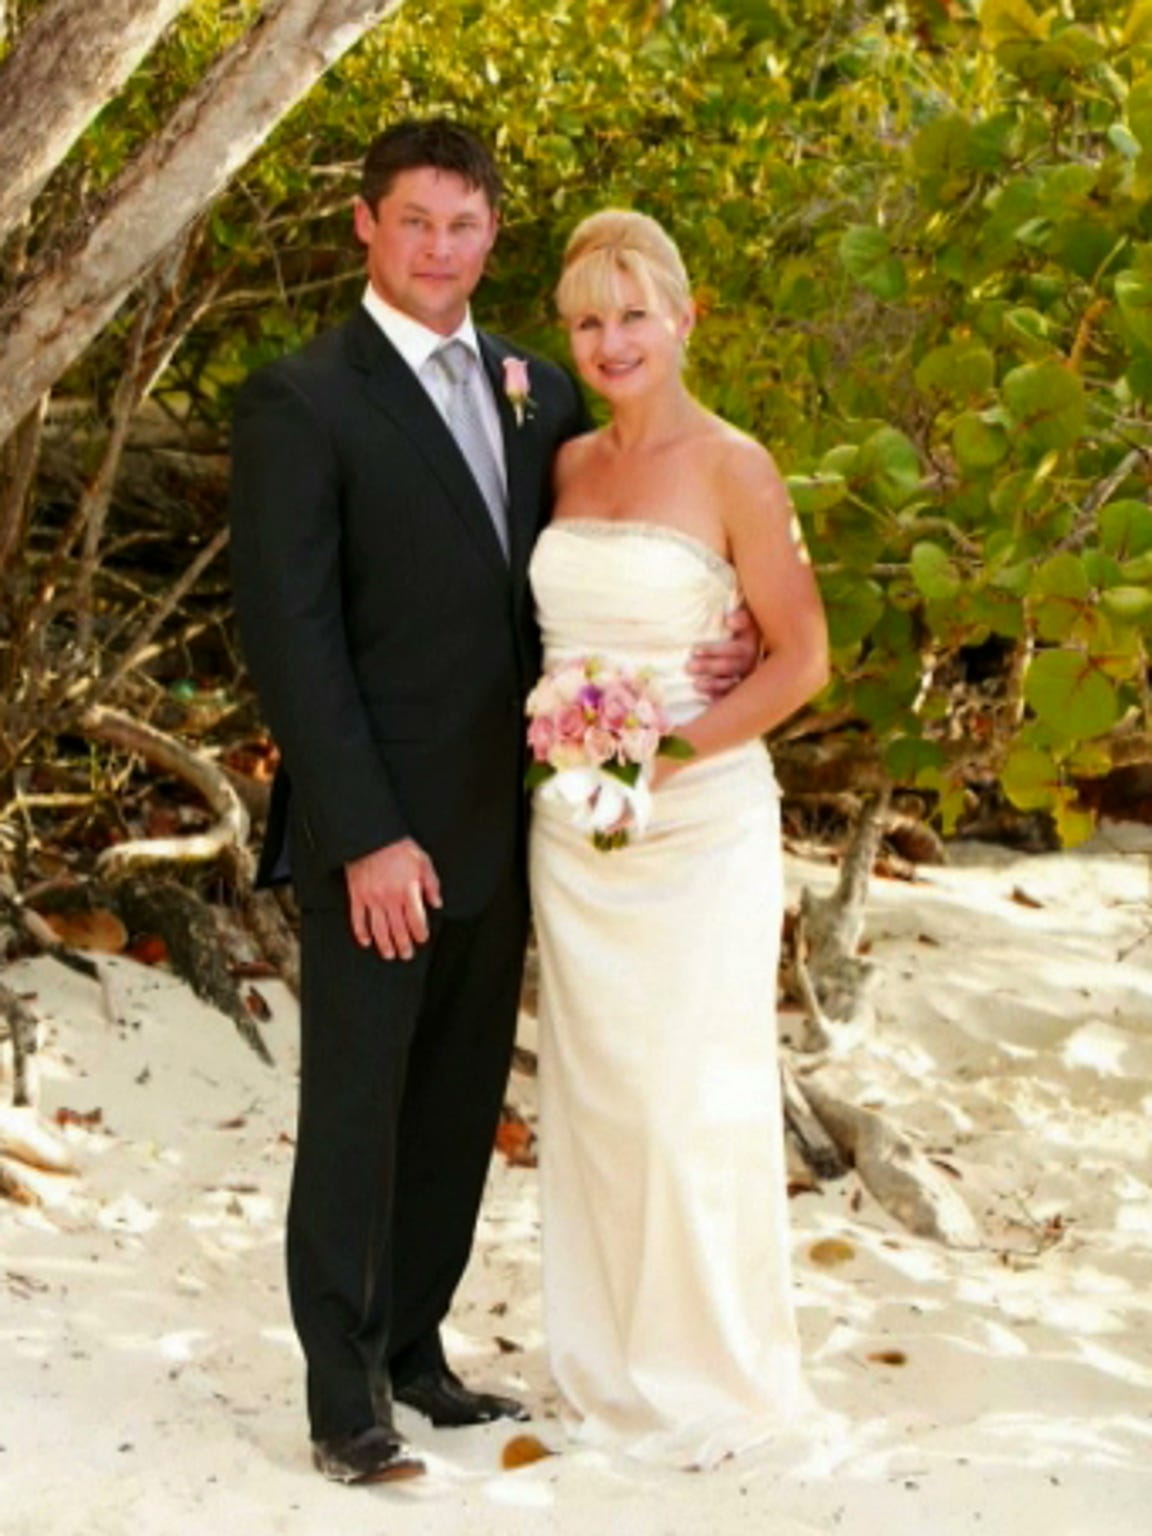 Joe and Olga got married in St. John